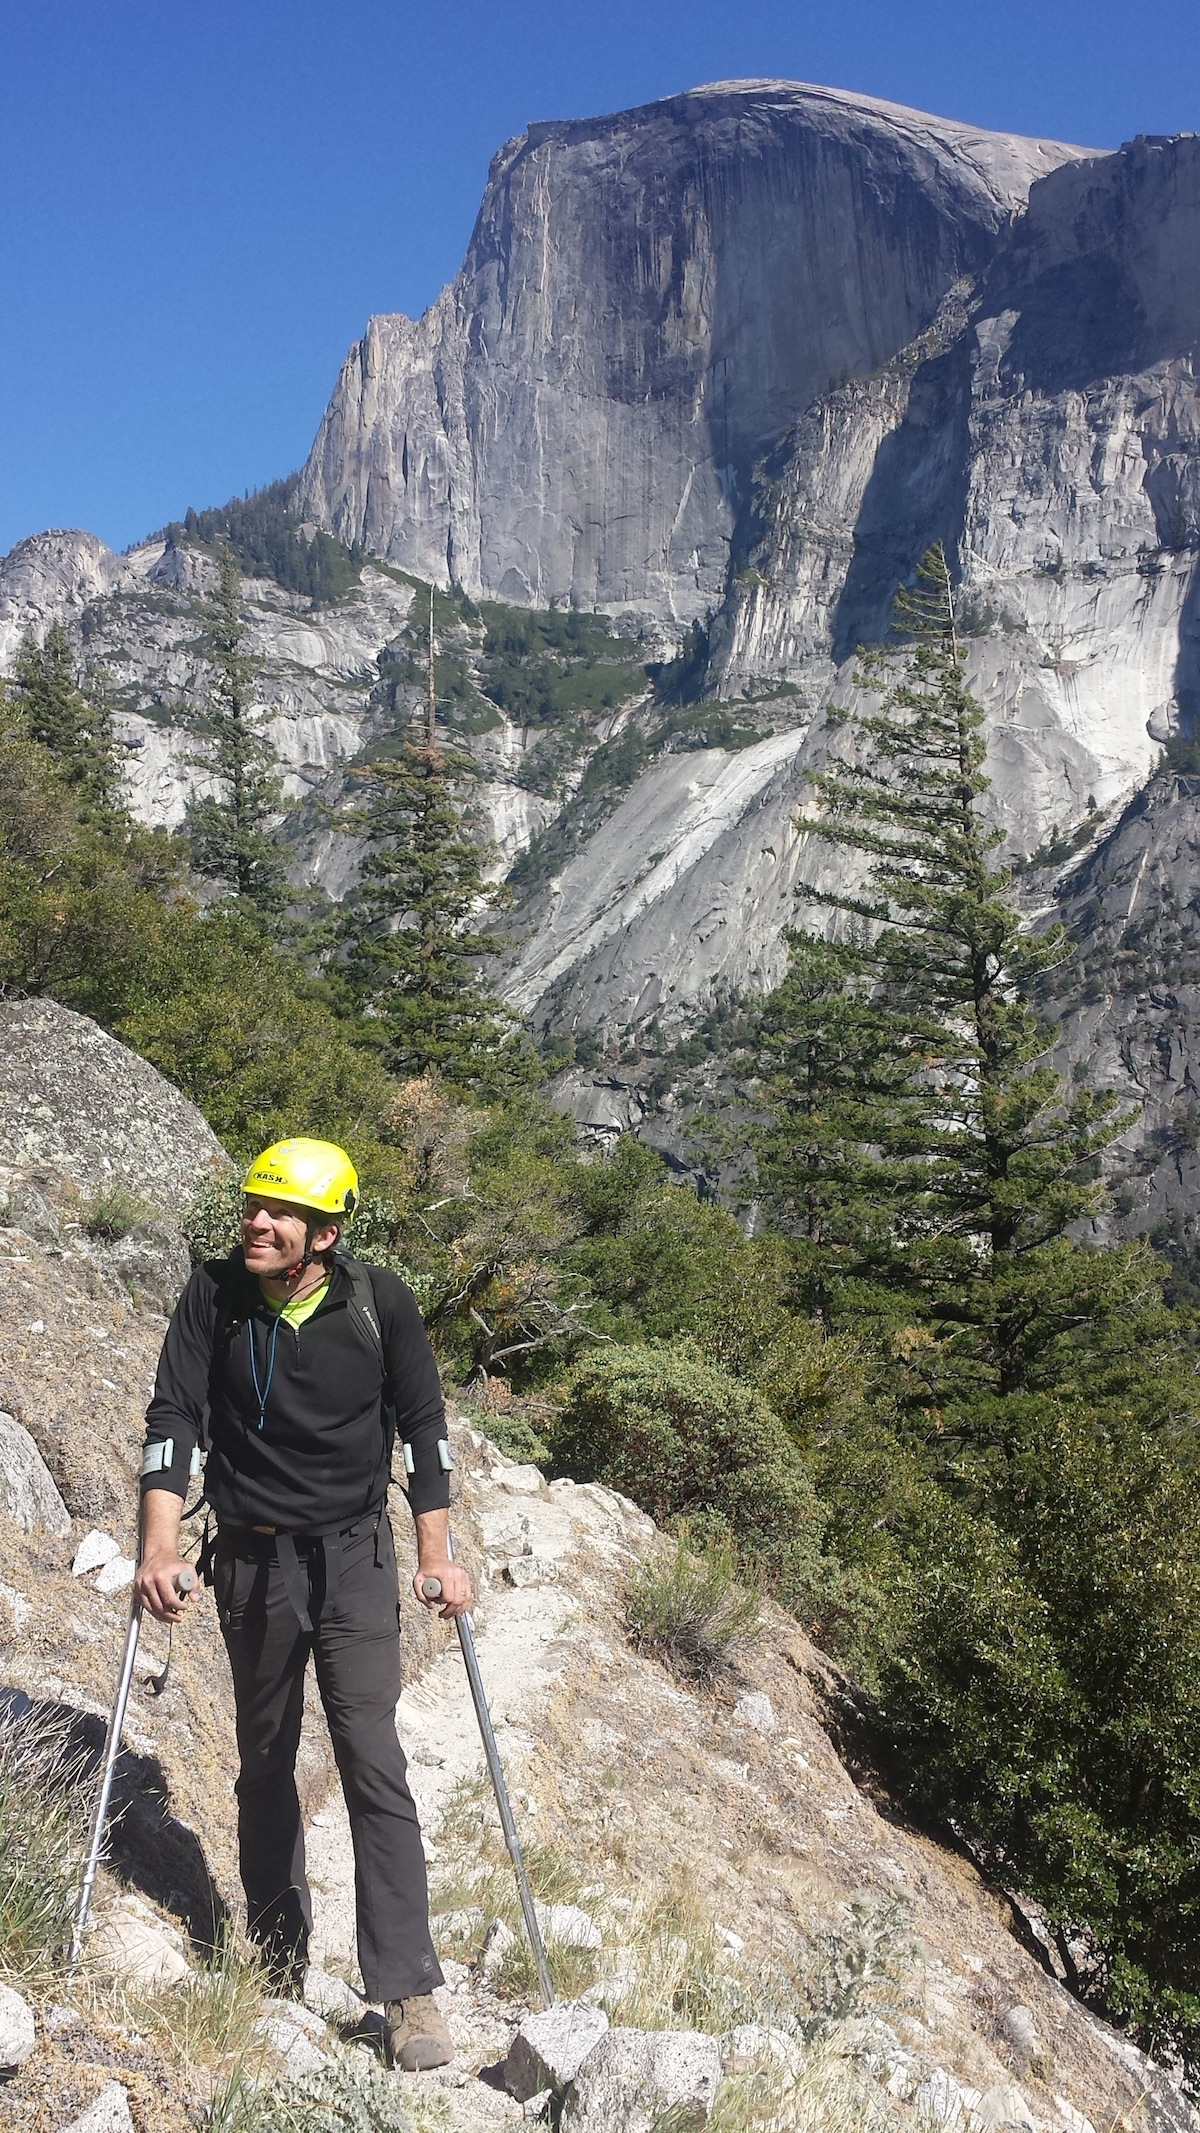 The author on the approach to Washington Column with Half Dome in the background, 2015. [Photo] Alex McKiernan collection